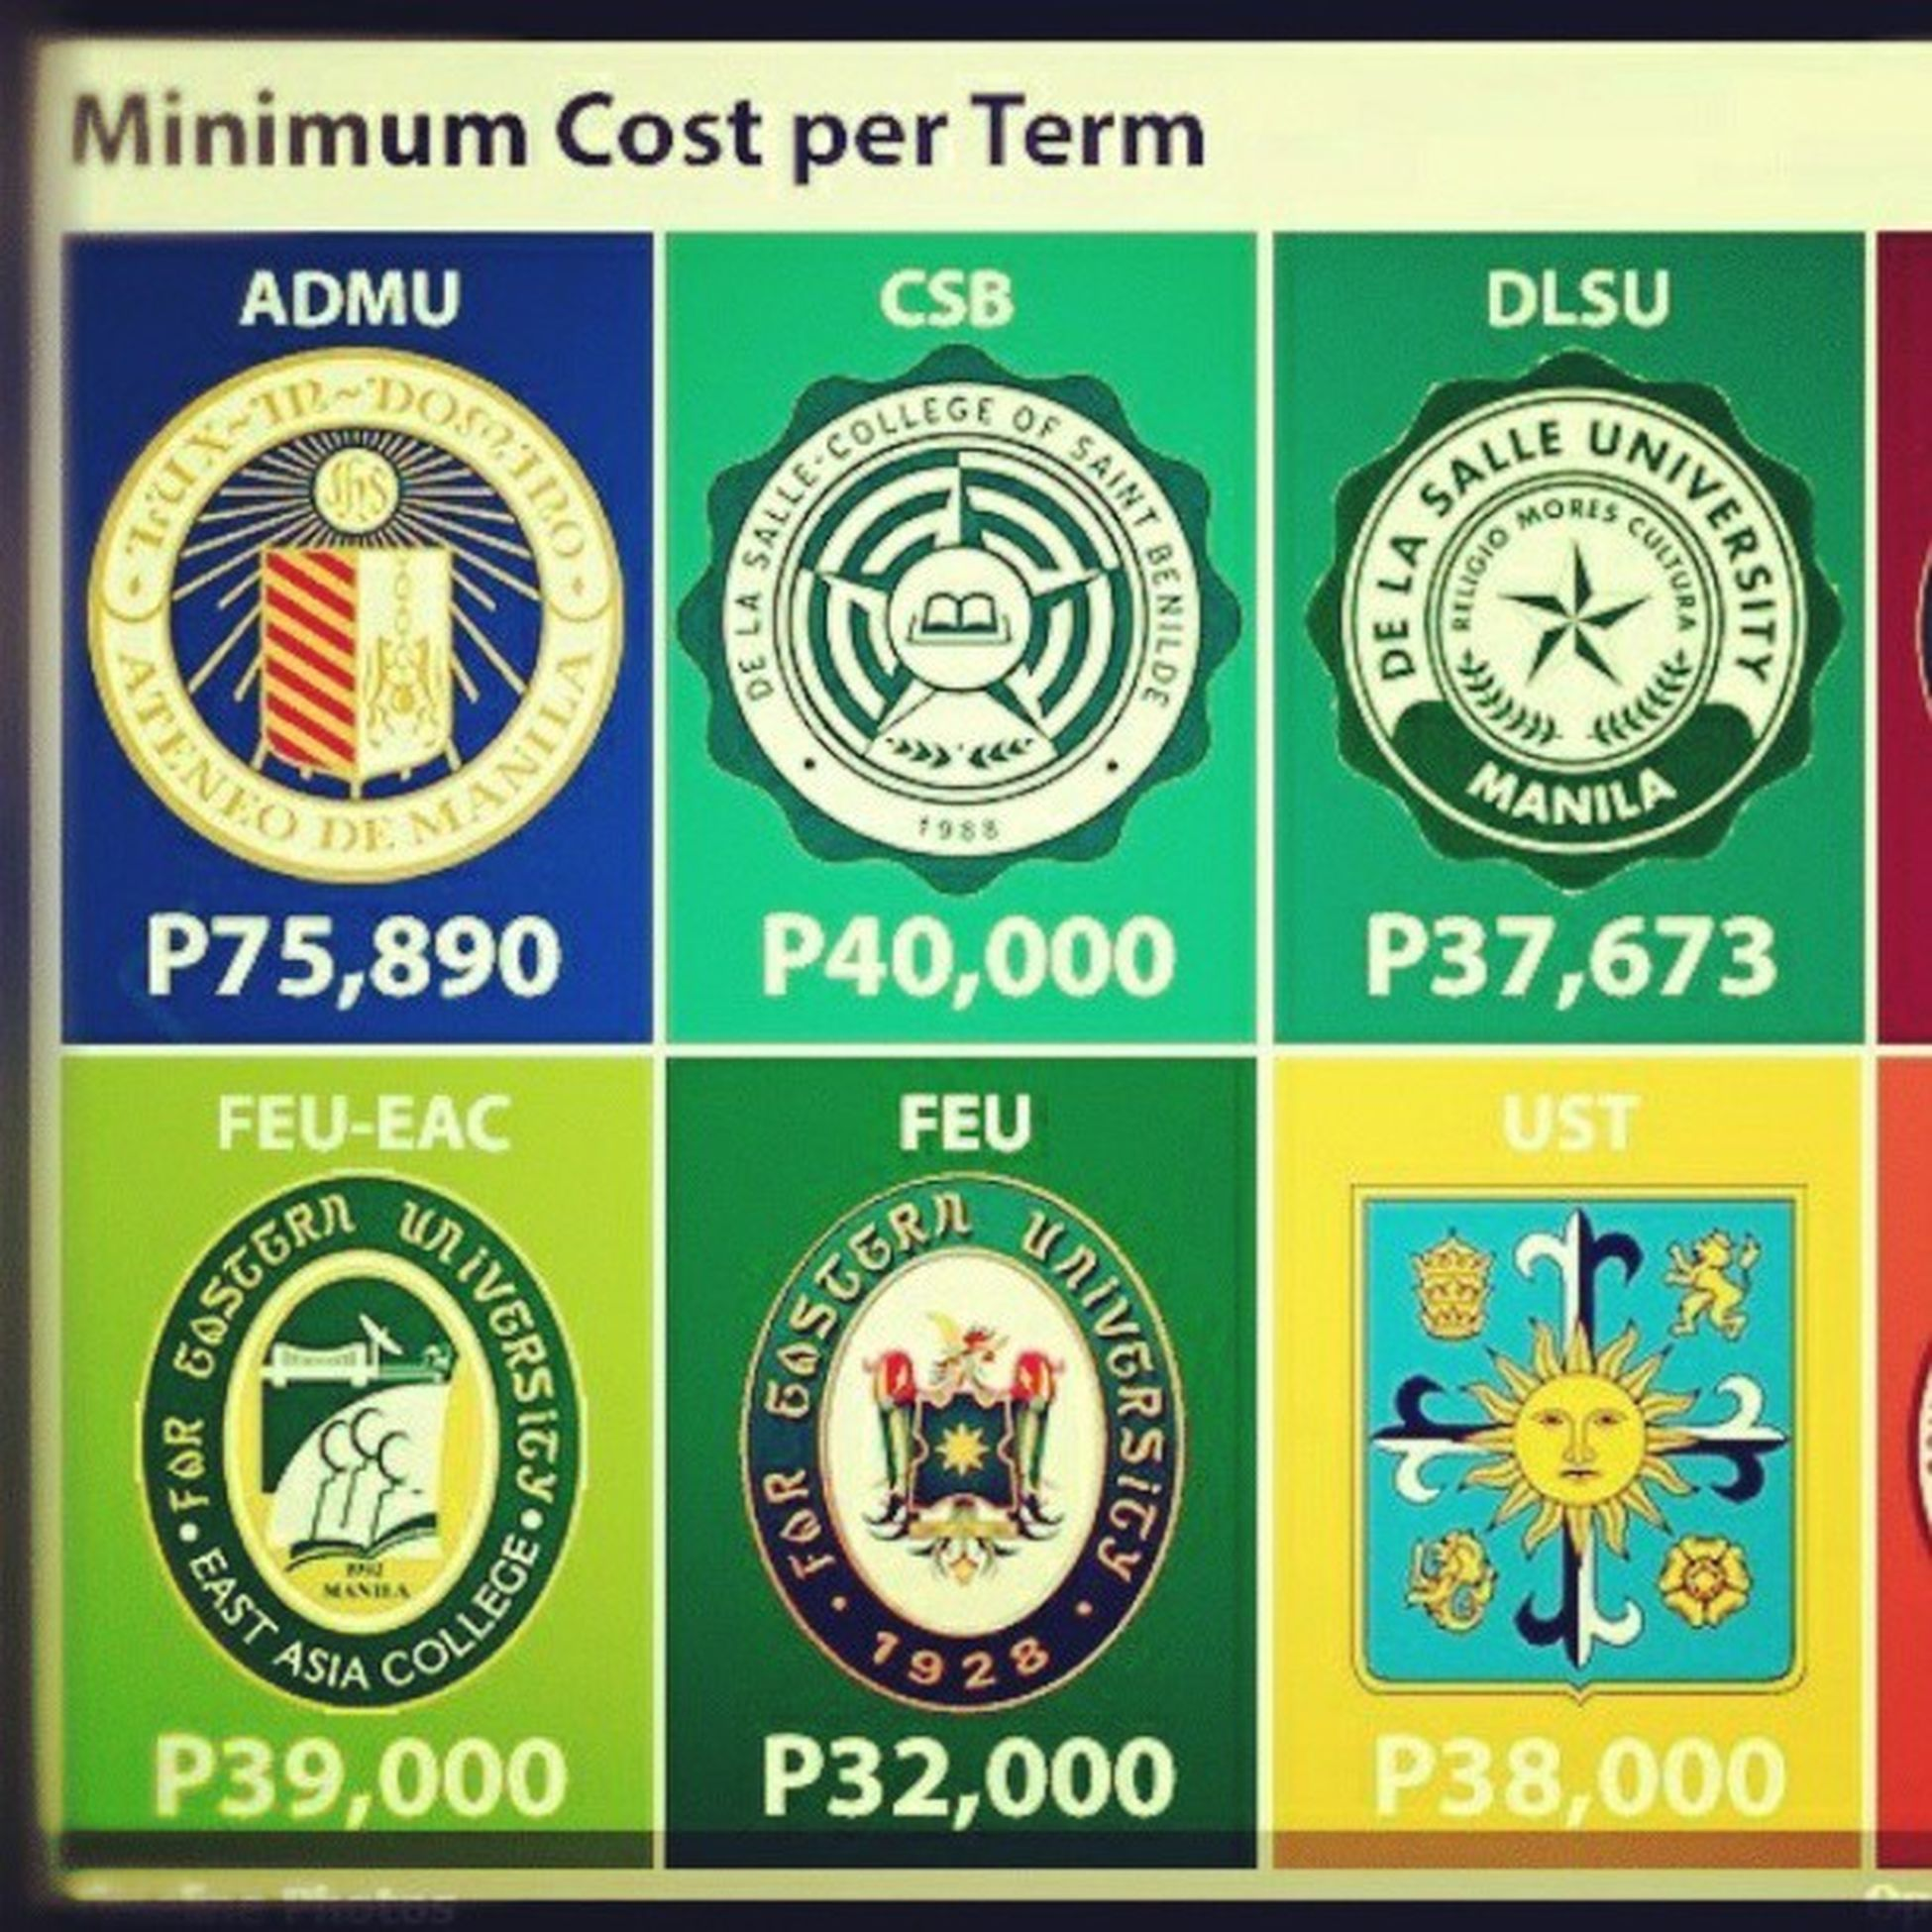 Hahahaha. This is it baby. Minimum cost per term. Feueac .